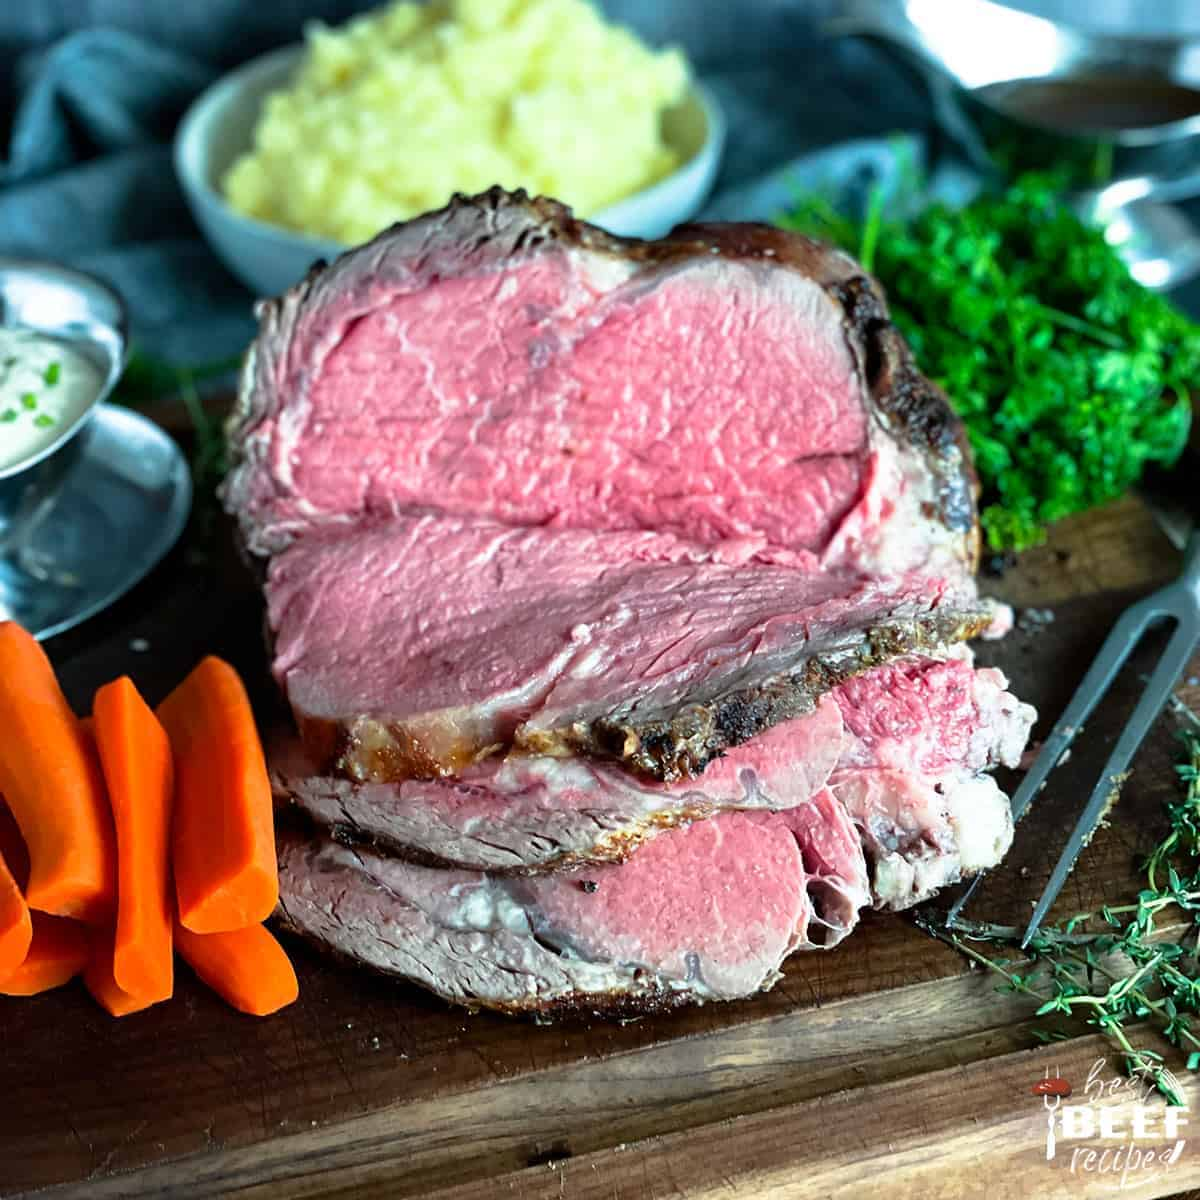 Sous vide prime rib sliced on a cutting board next to carrots and greens